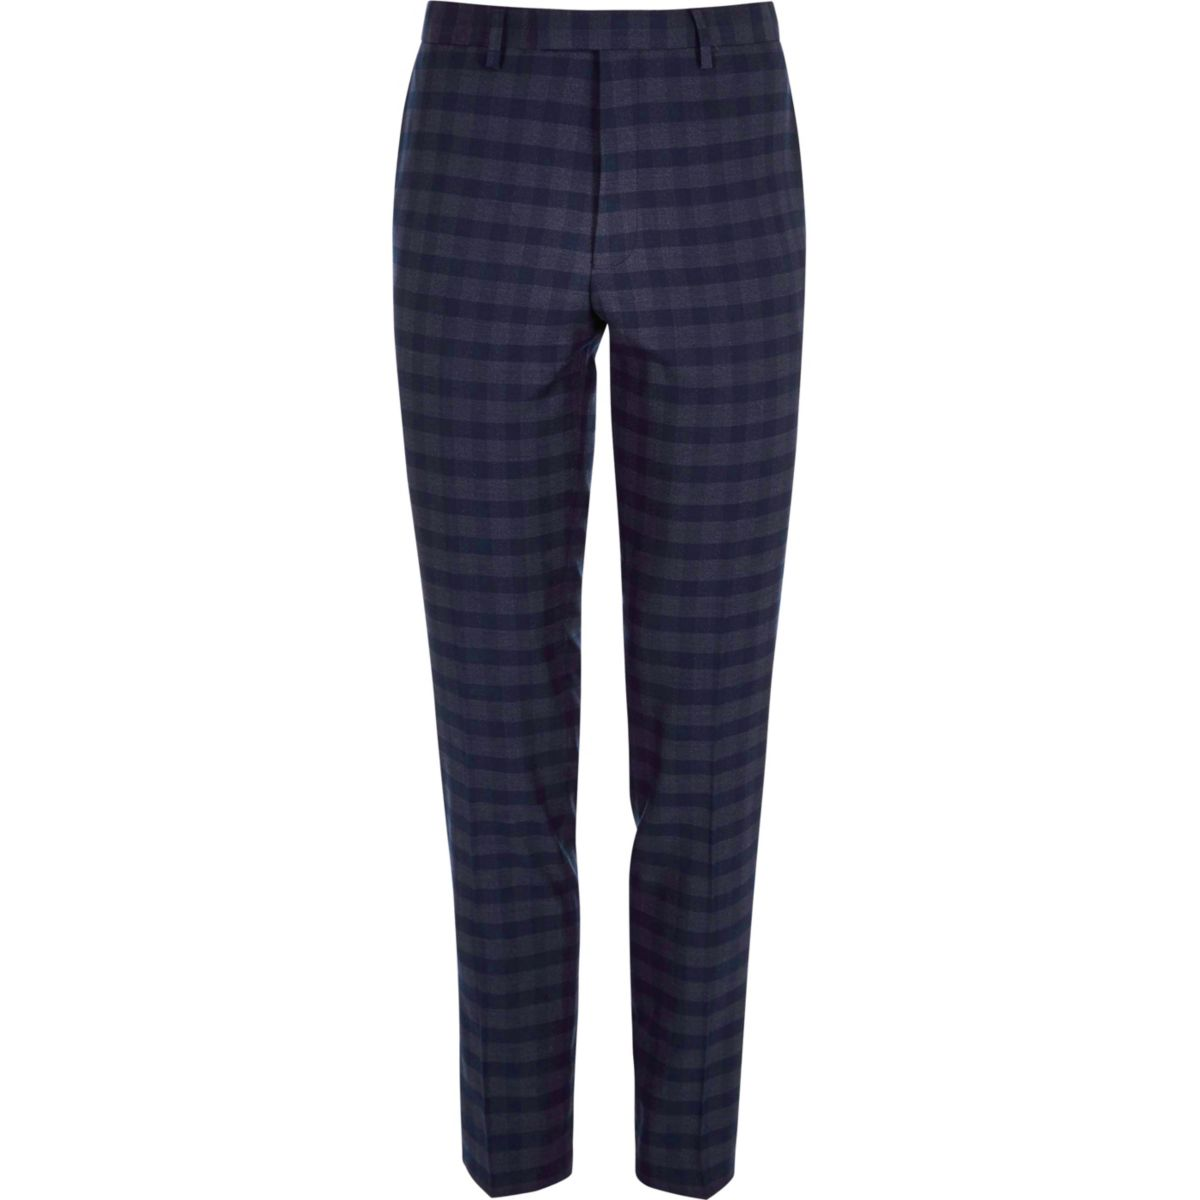 Blue check skinny fit suit pants